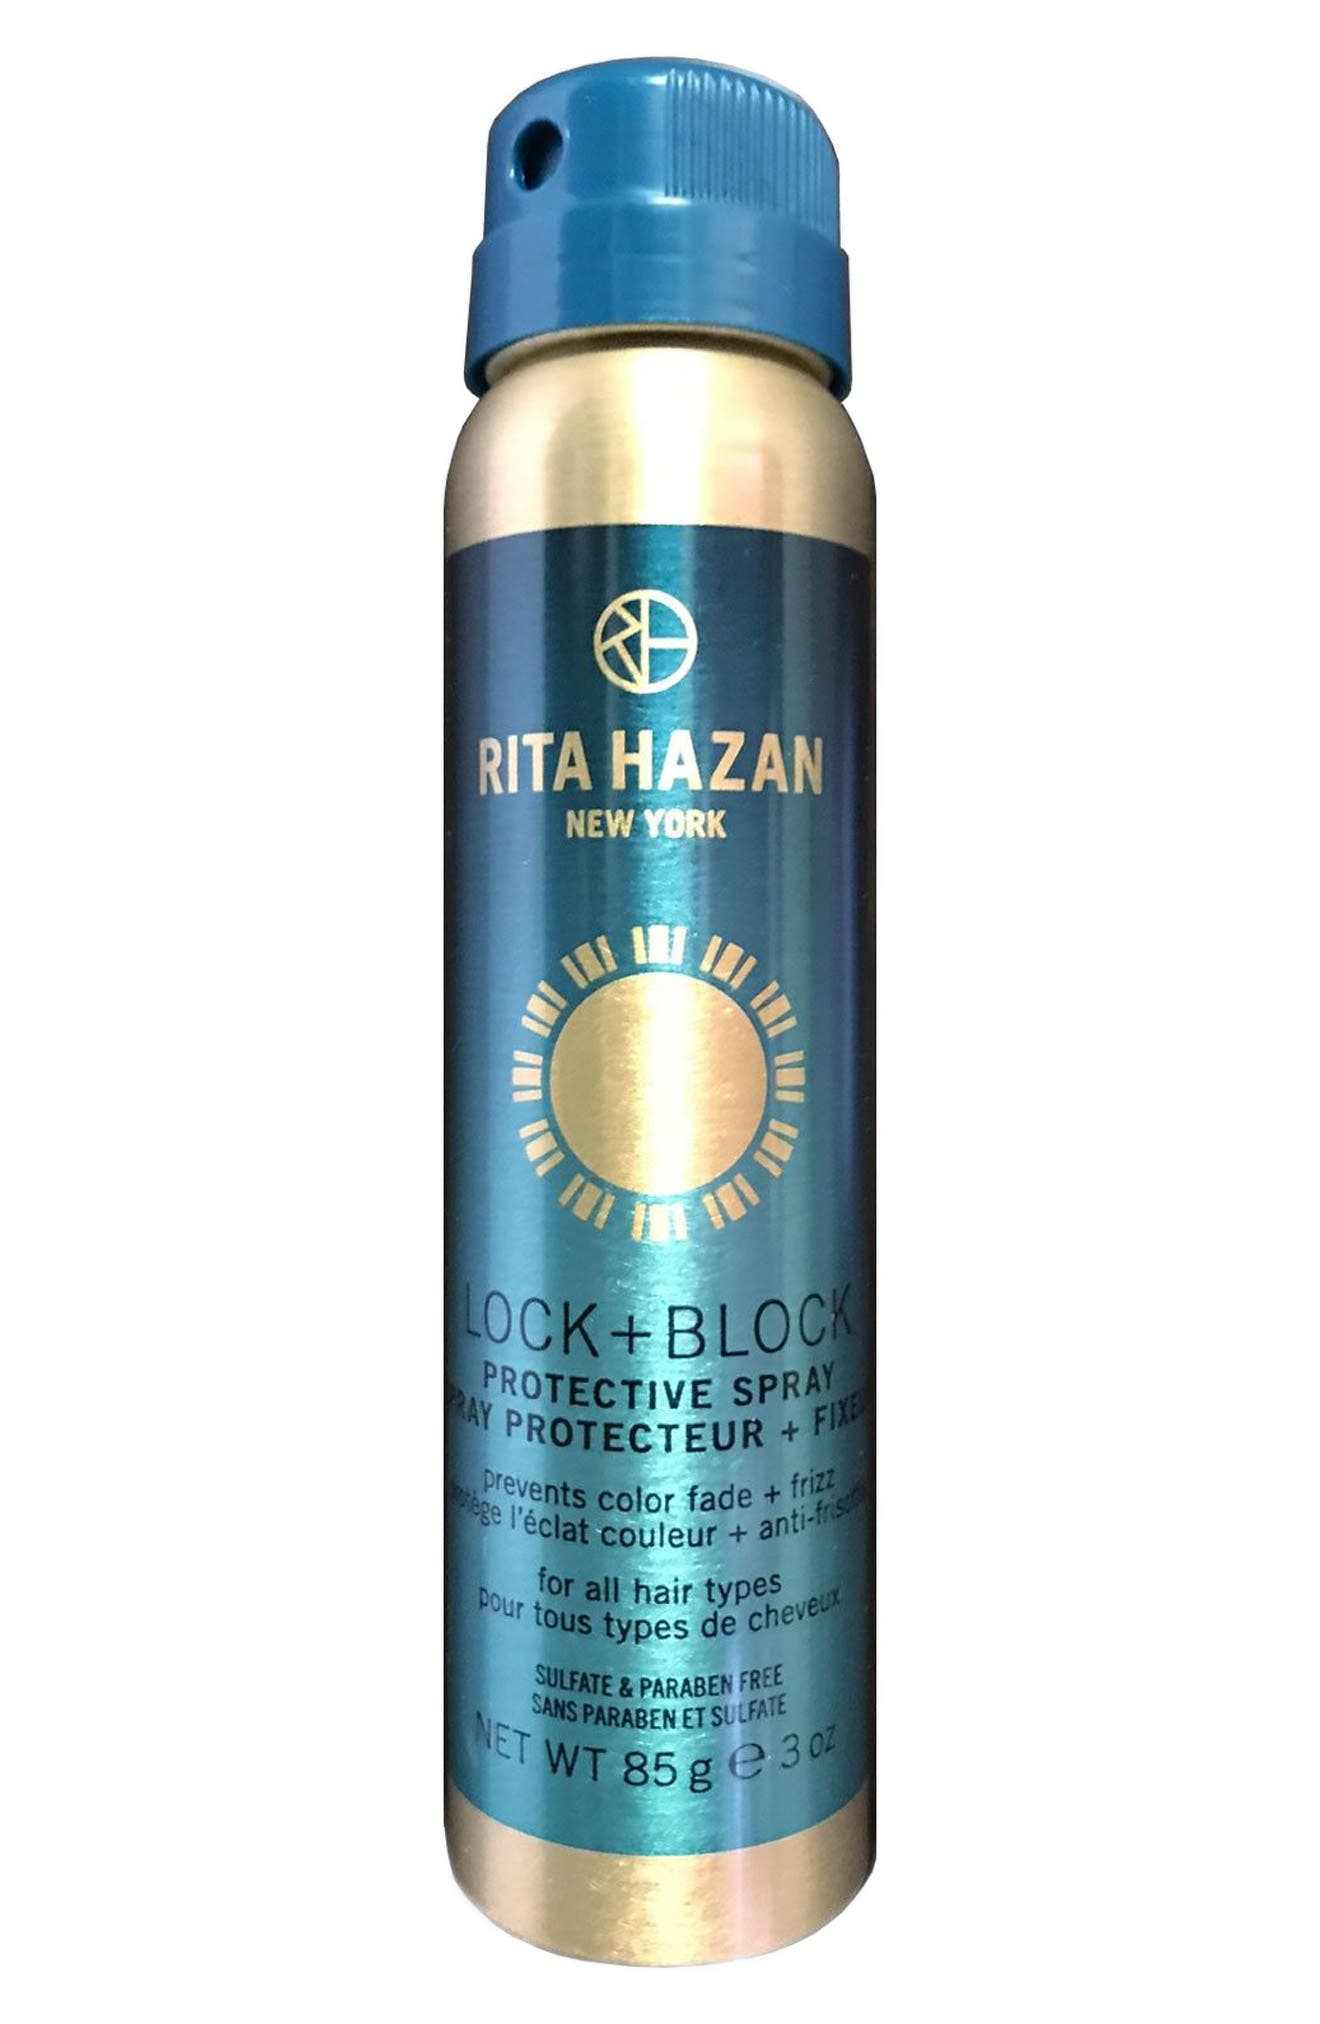 RITA HAZAN NEW YORK Rita Hazan Lock + Block Protective Spray, Main, color, NO COLOR